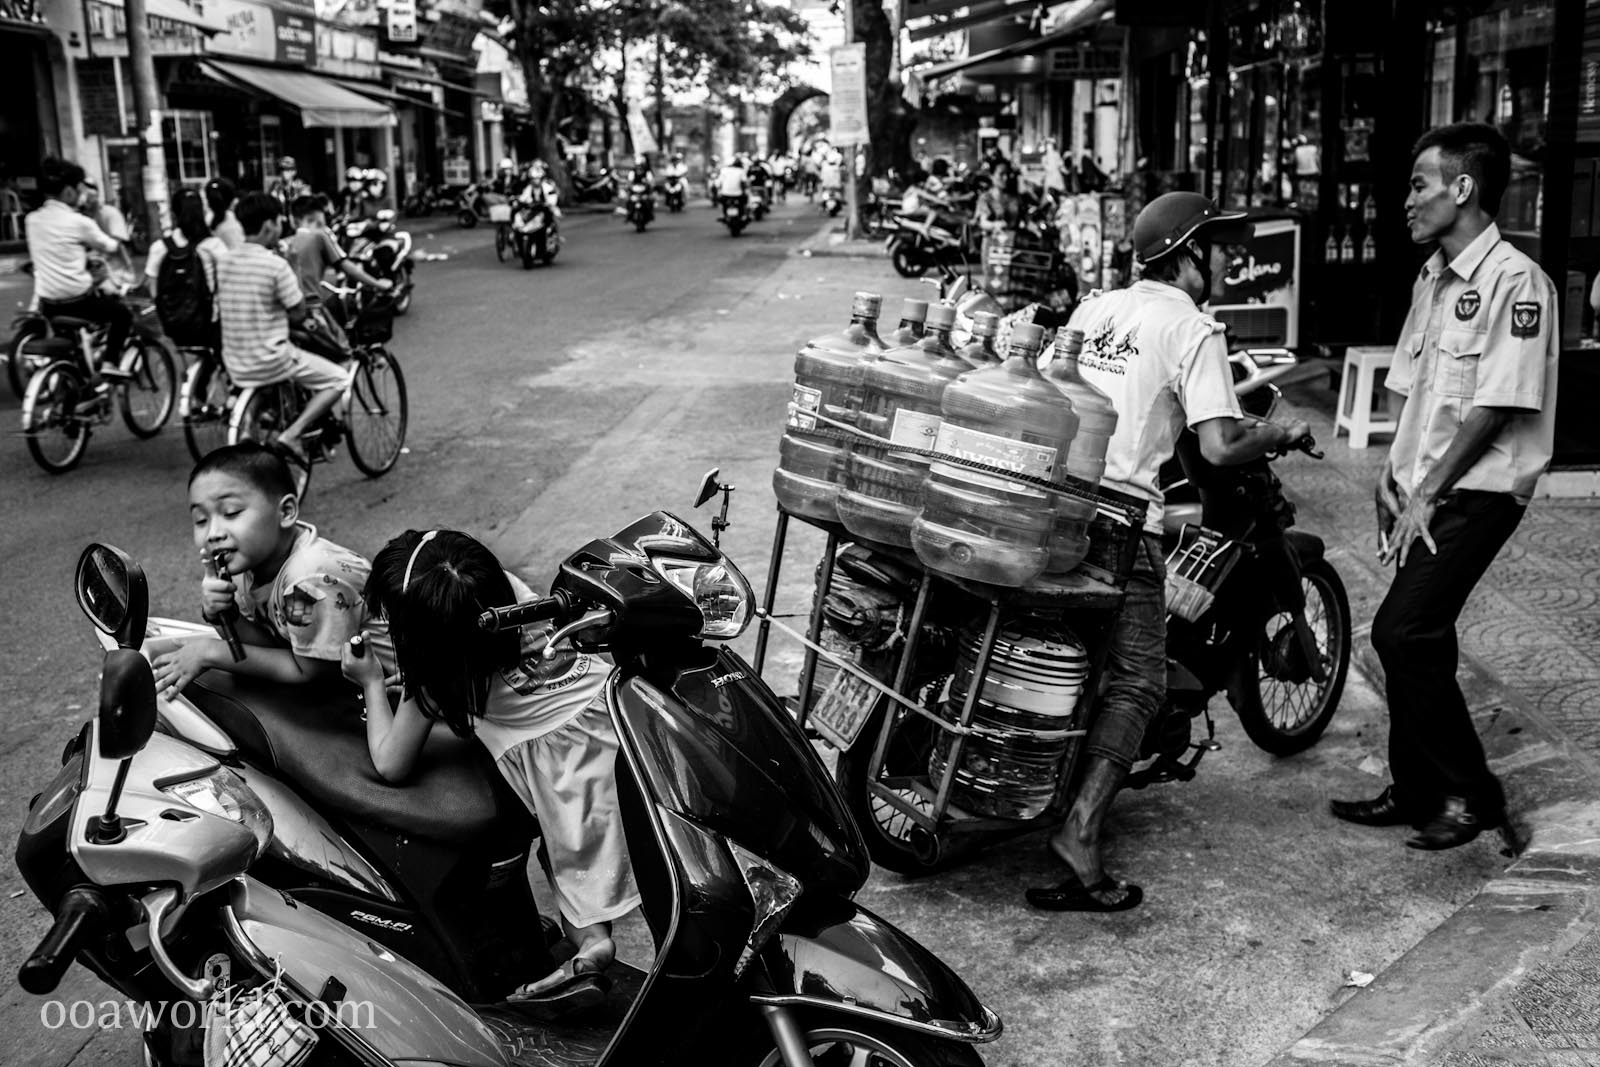 Hue Vietnam Street Photography Photo Ooaworld